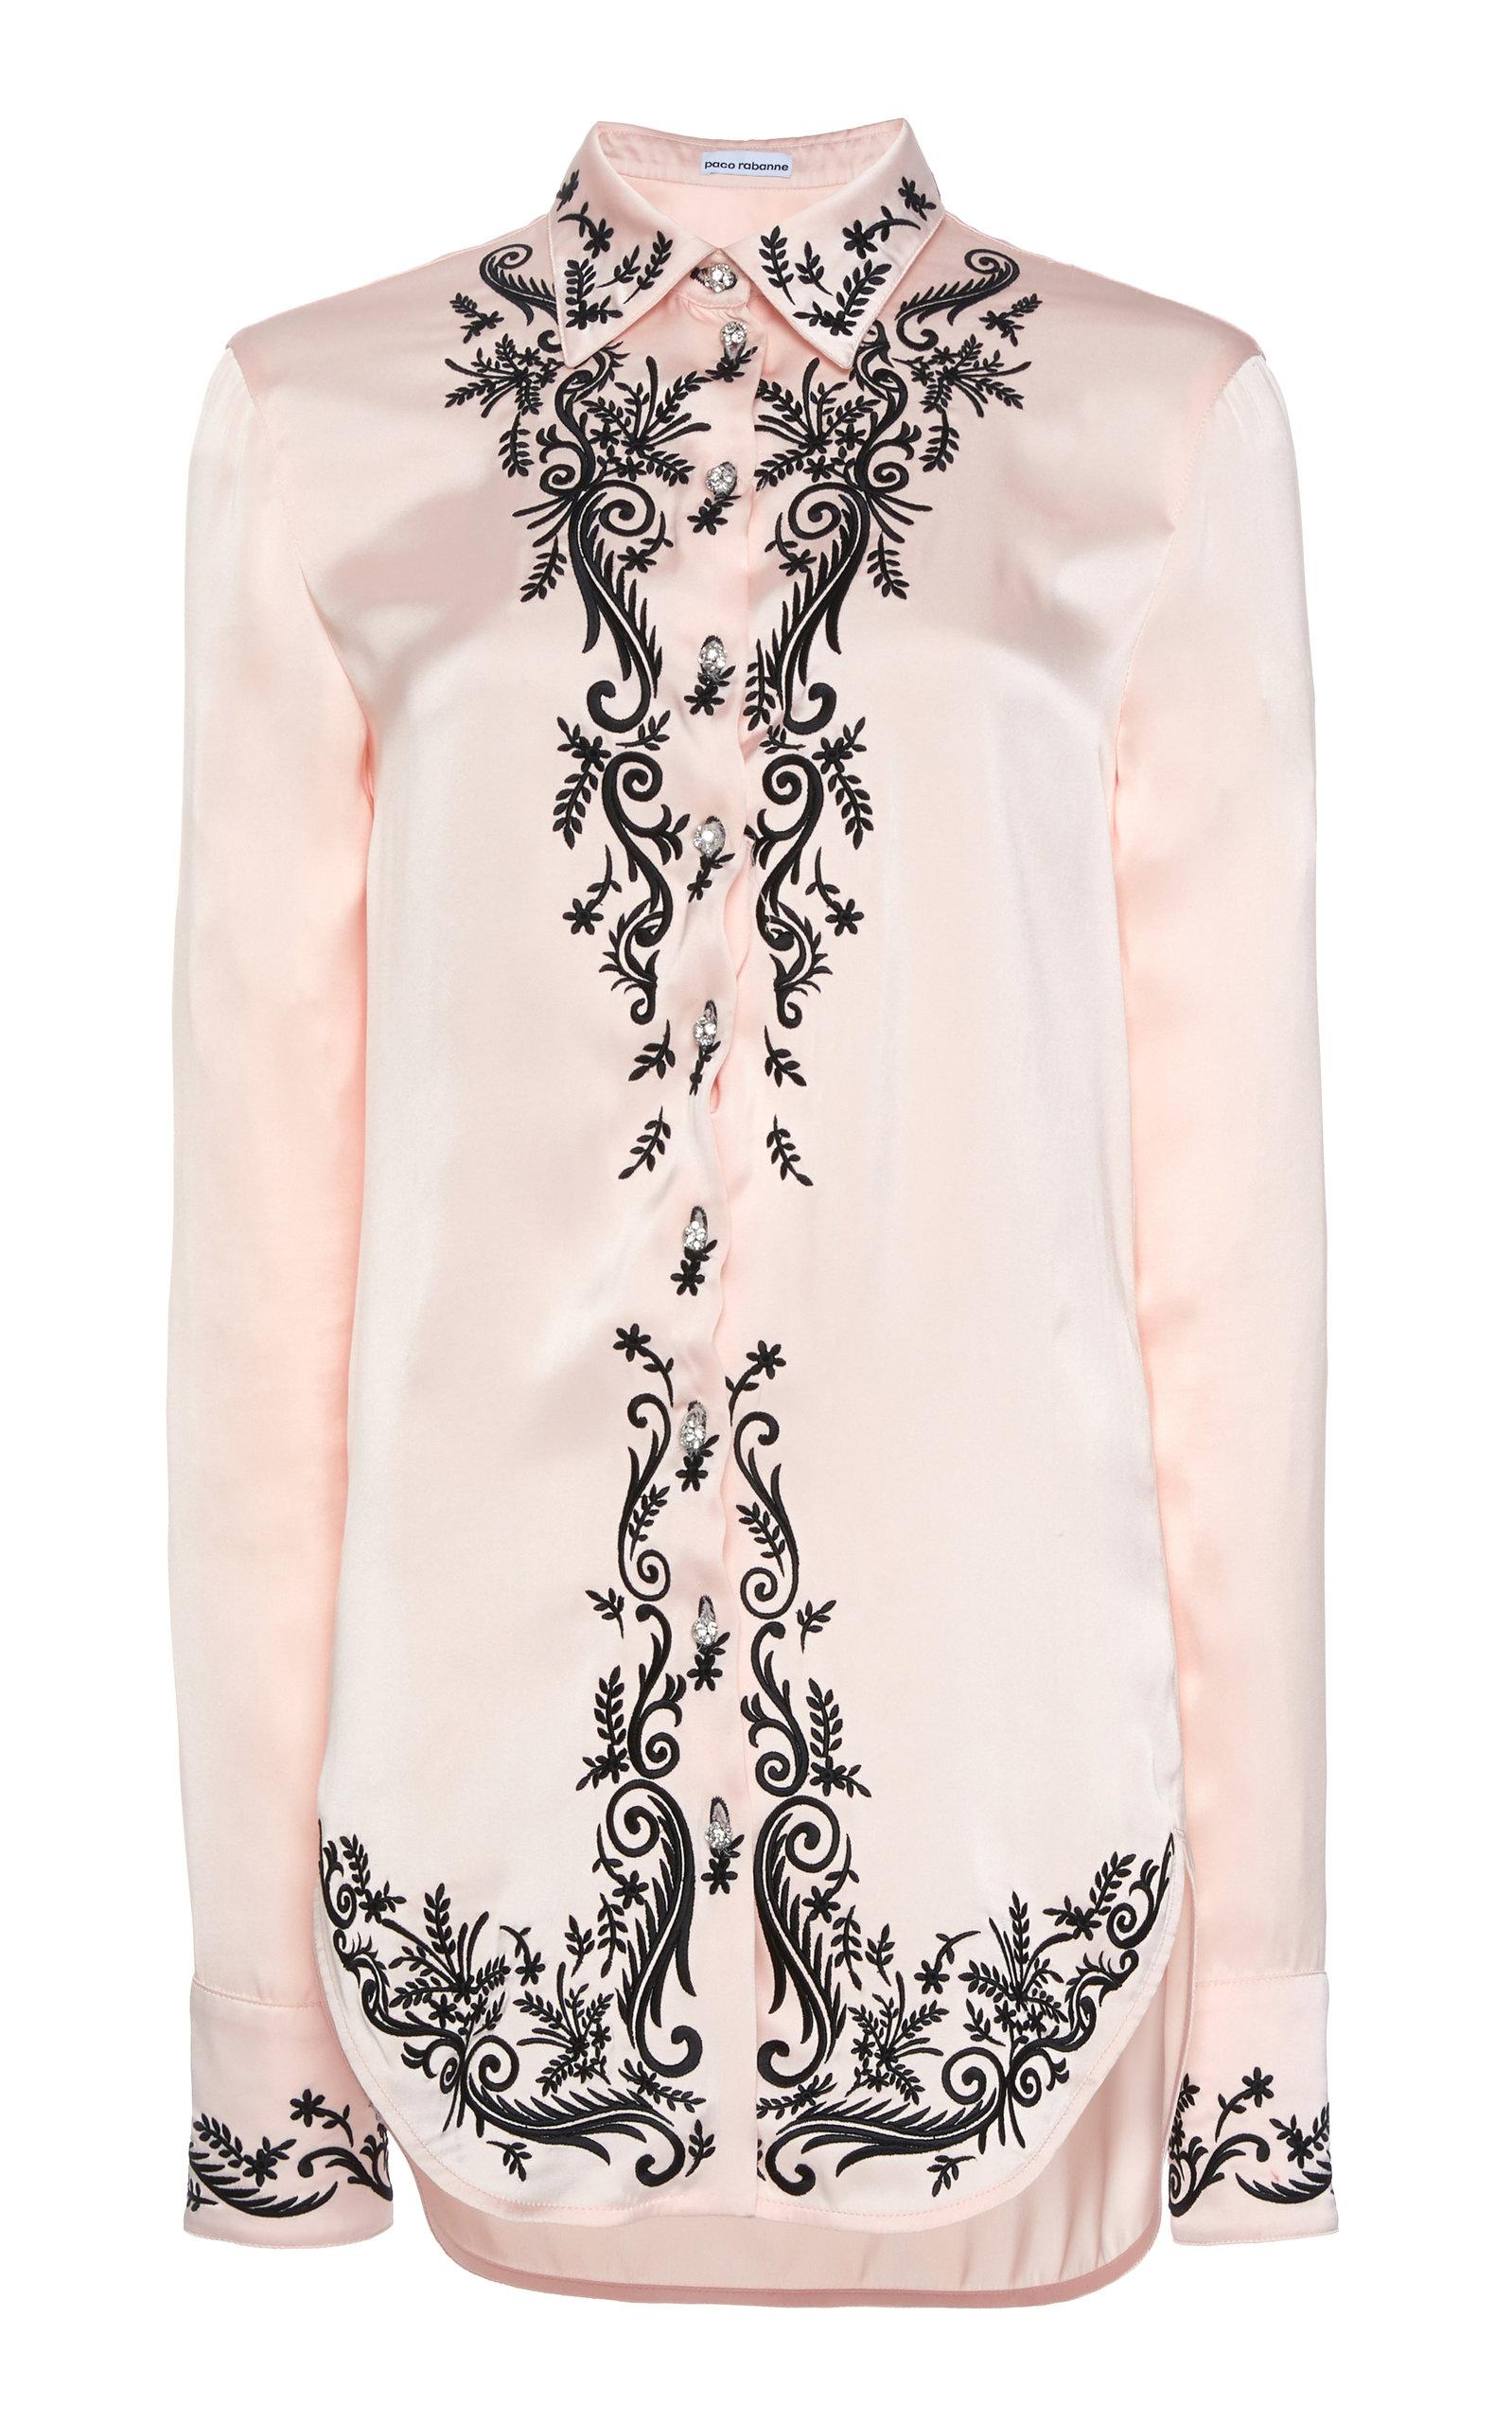 08f6c4c8 Paco Rabanne - Pink Embroidered Satin Shirt - Lyst. View fullscreen